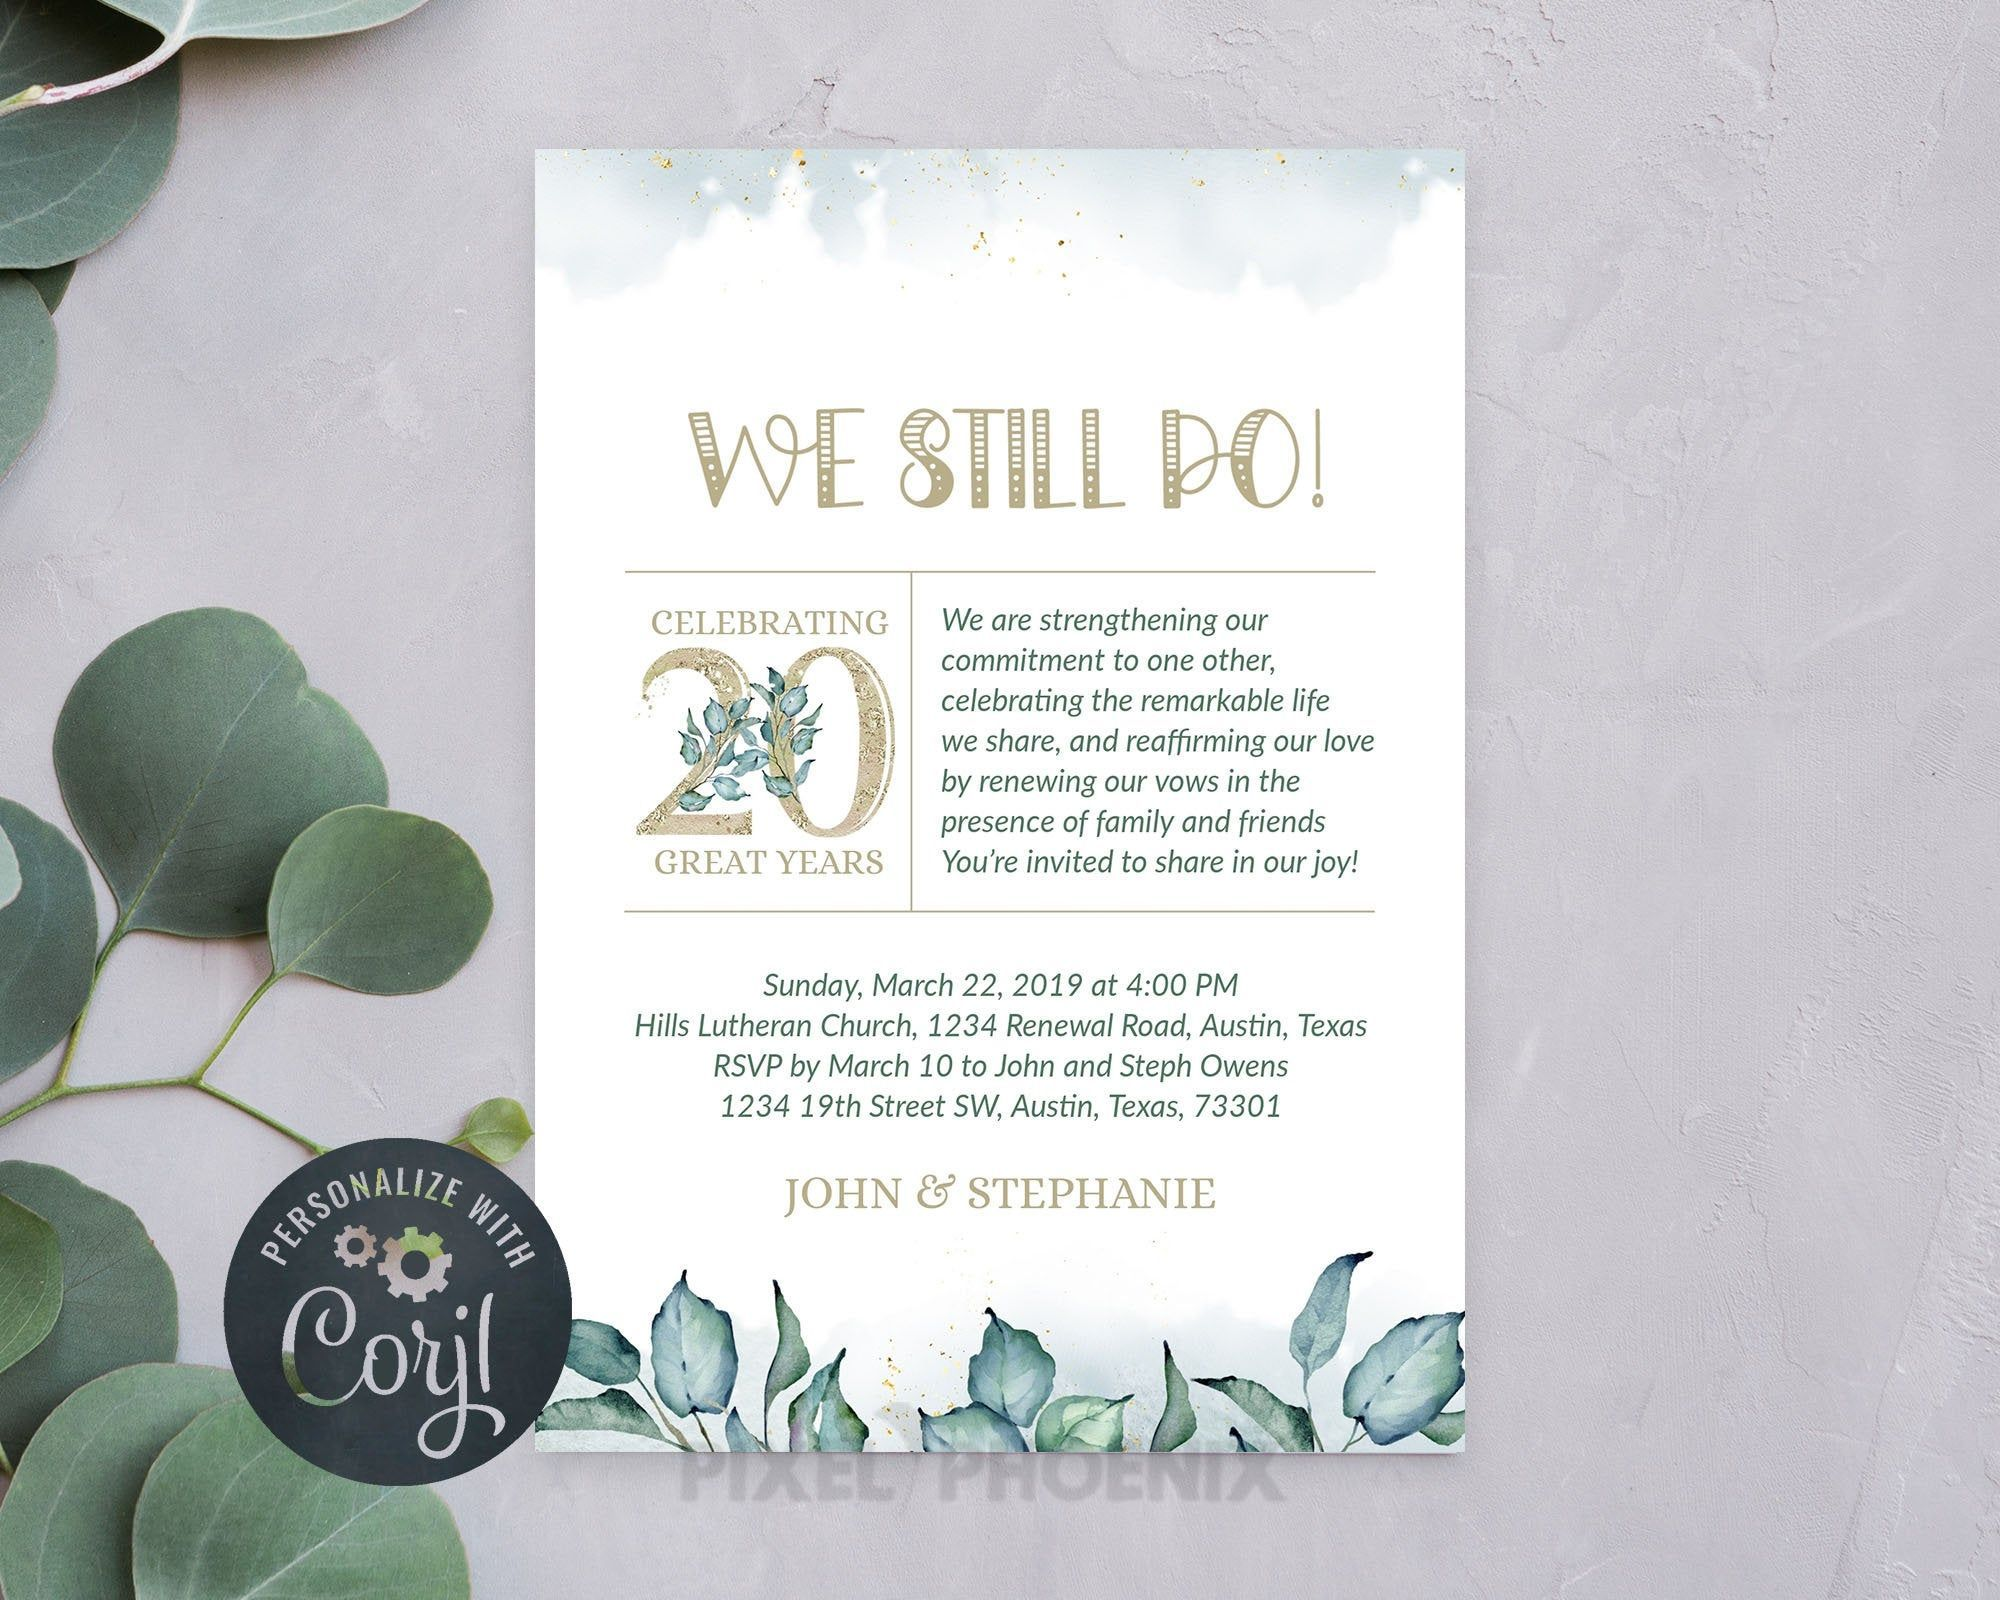 20th Anniversary, We still do, Vow renewal, Anniversary Invitations, Greenery invite, Anniversary Template, Wedding anniversary, 10 year #20thanniversarywedding 20th Anniversary, We still do, Vow renewal, Anniversary Invitations, Greenery invite, Anniversary Template, Wedding anniversary, 10 year #20thanniversarywedding